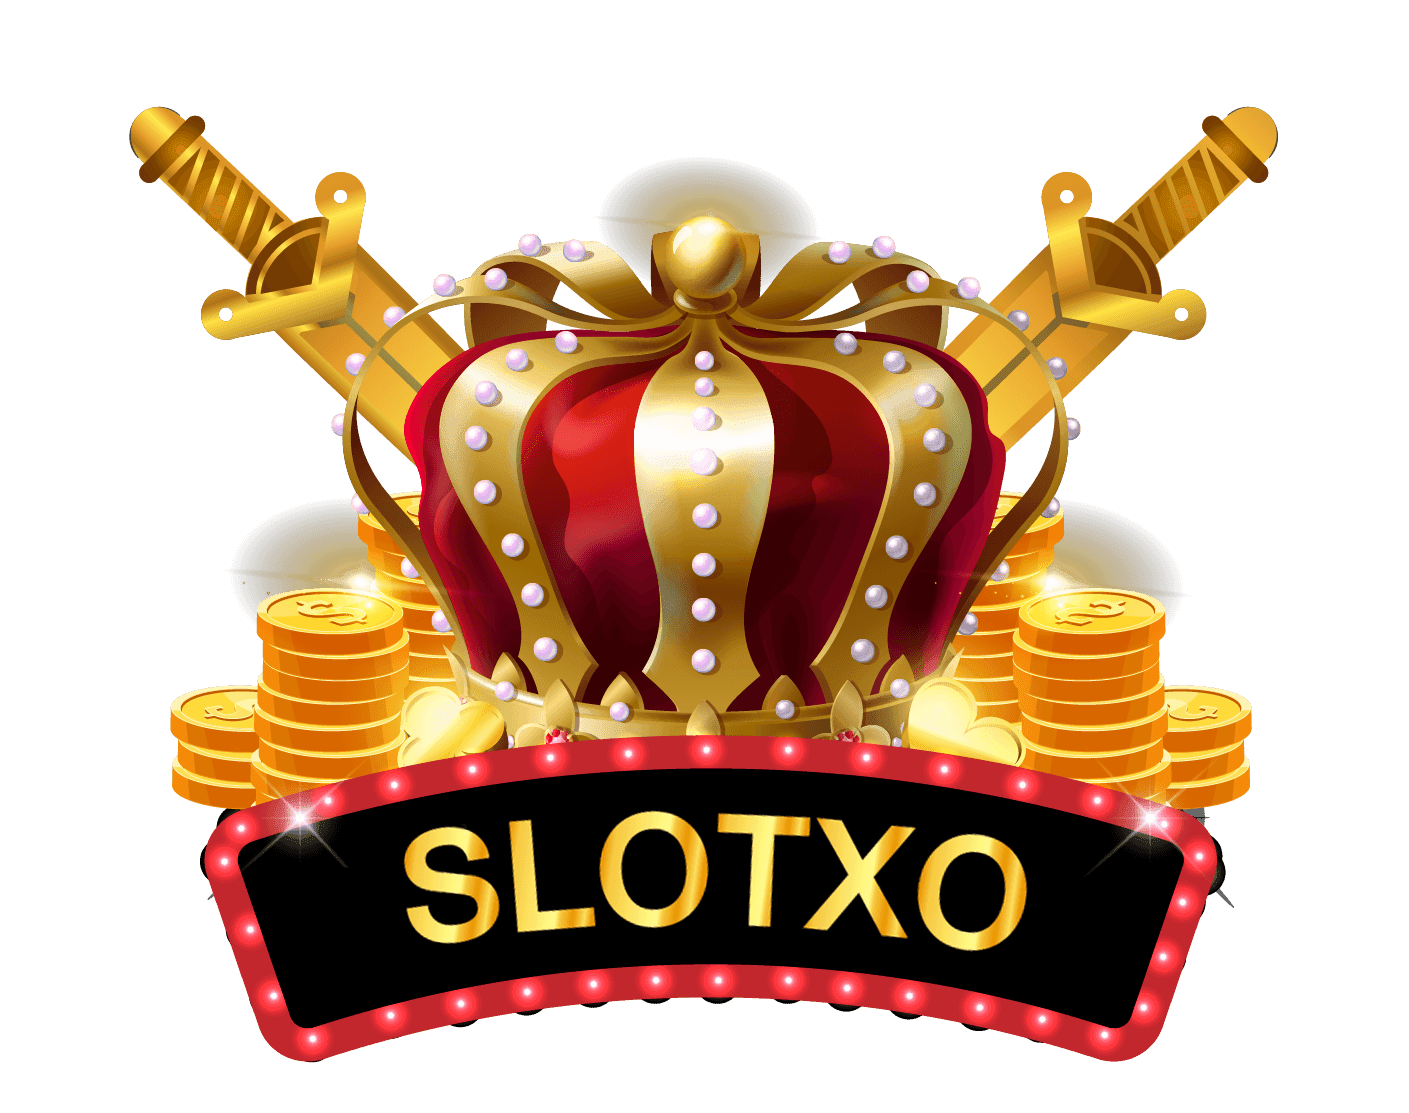 How to access SLOTXO? | Lifestylemission